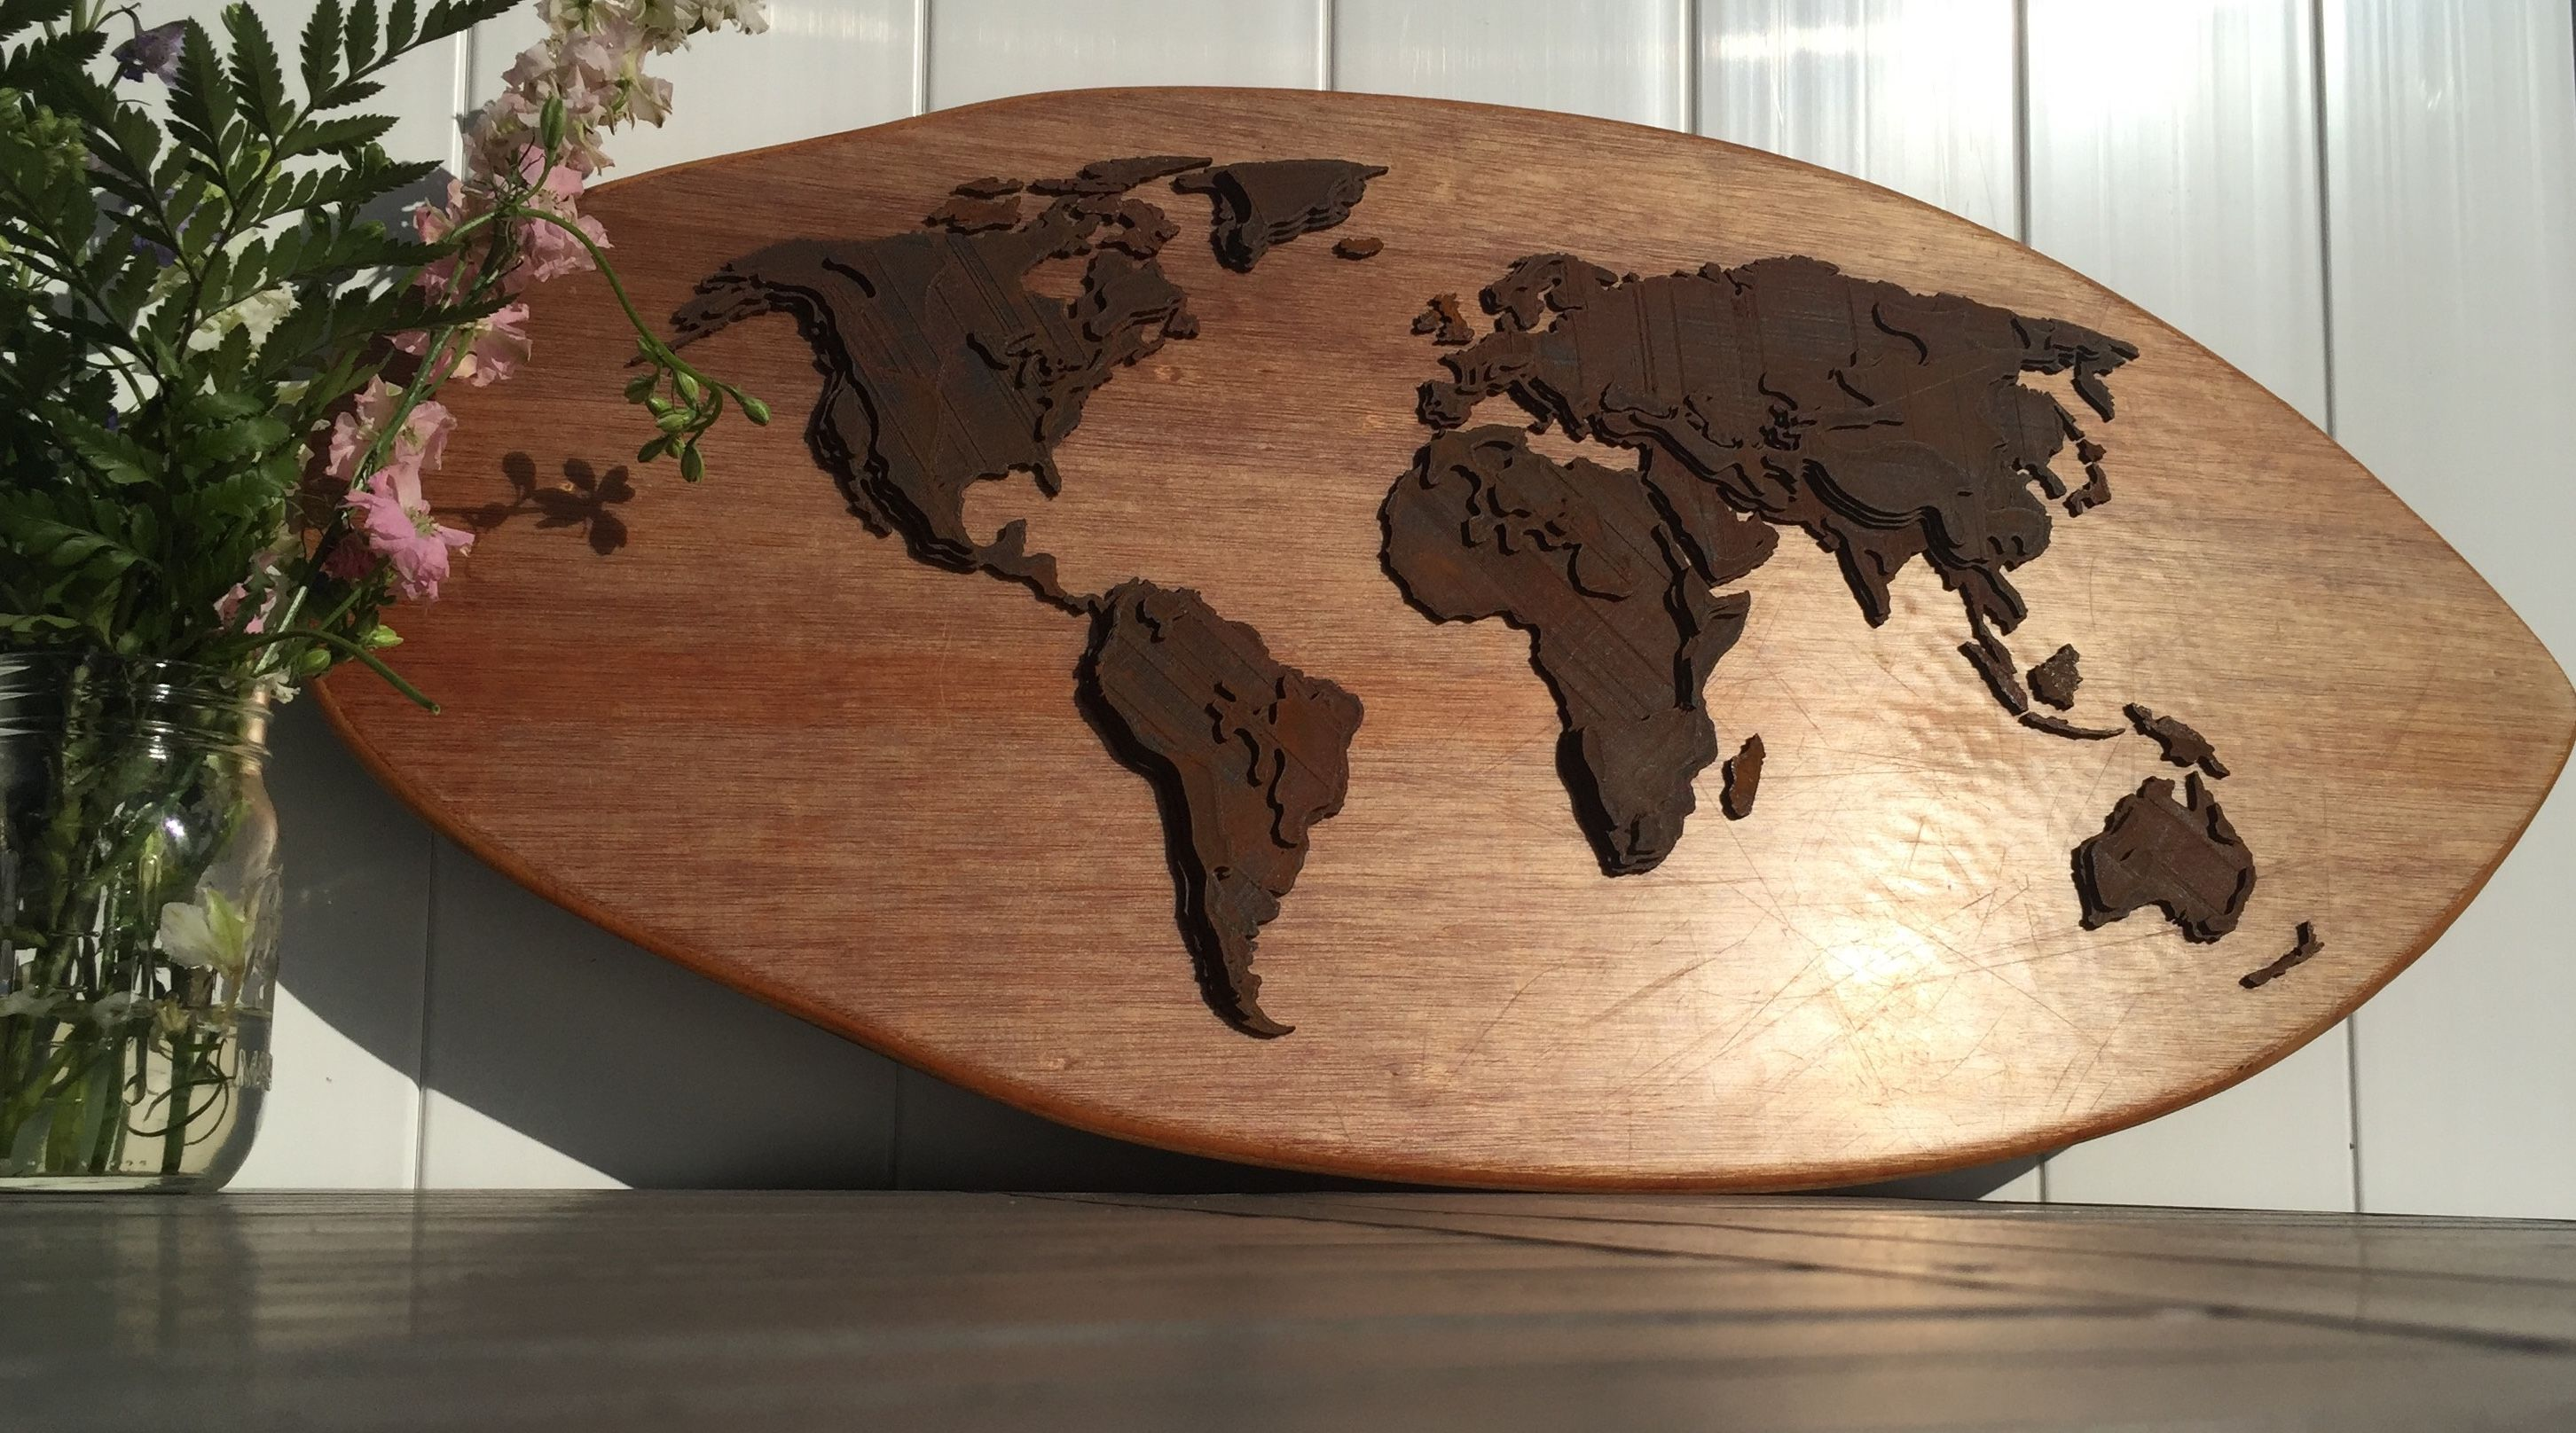 3d printed topographic map of the world mounted on a reclaimed